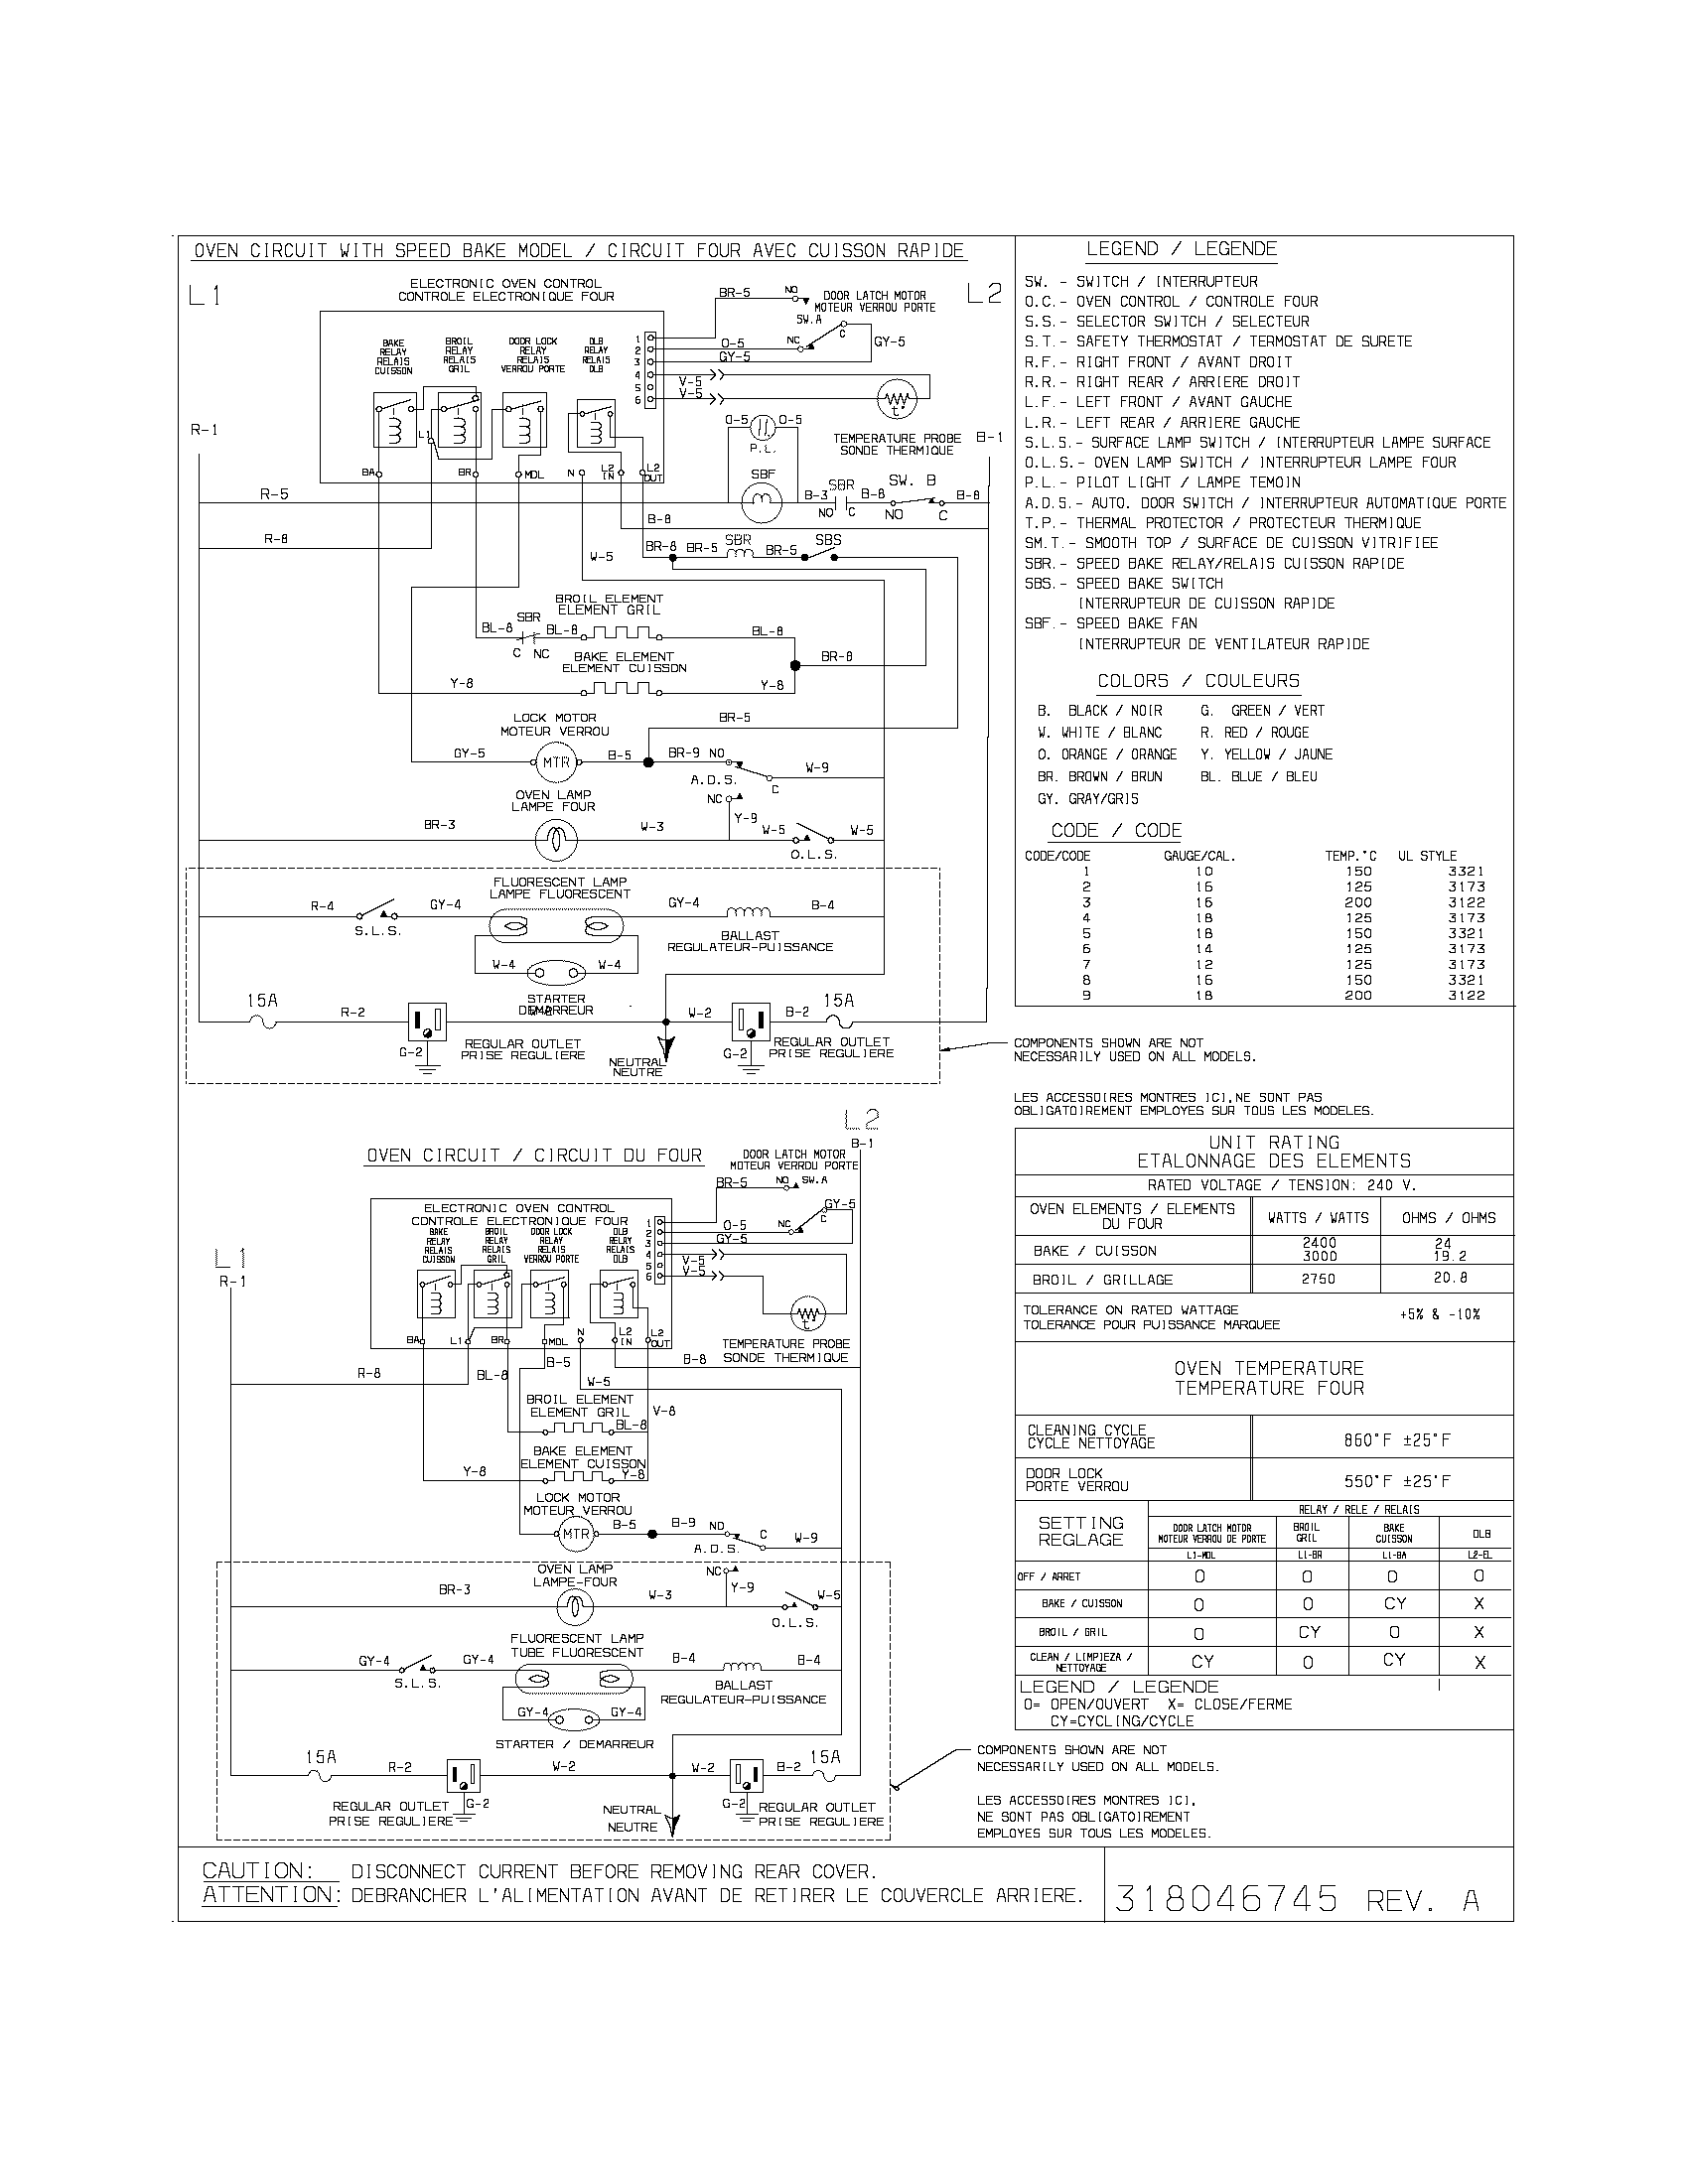 wiring diagram for electric range the wiring diagram frigidaire wiring diagram stove vidim wiring diagram wiring diagram